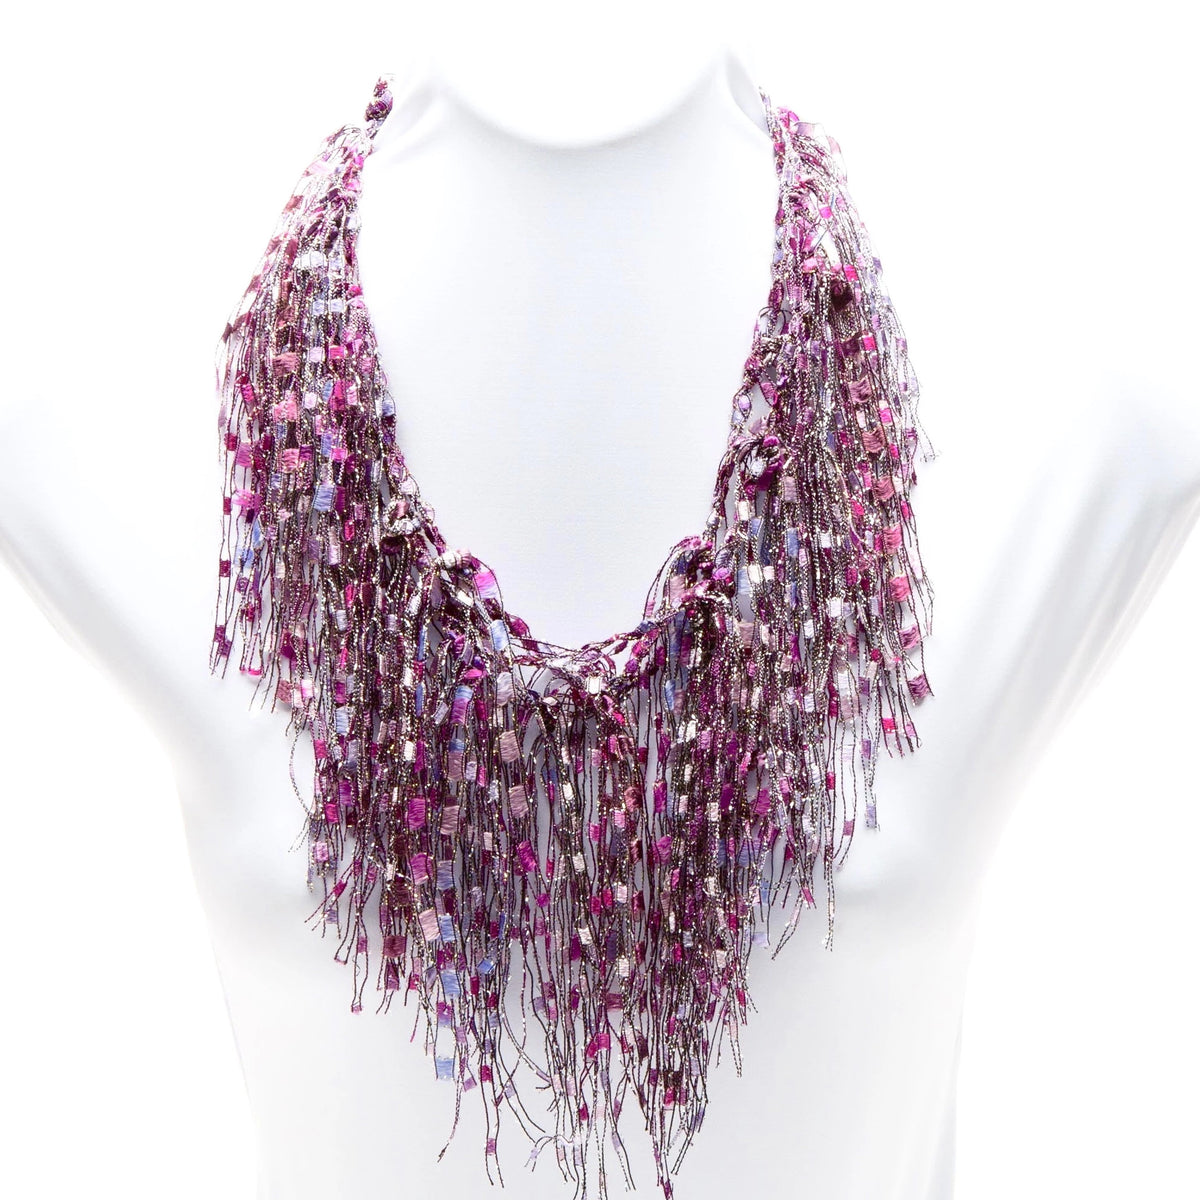 Hot Pink/Fuchsia and White Infinity Scarf - Pink Ruby GemLace Scarf